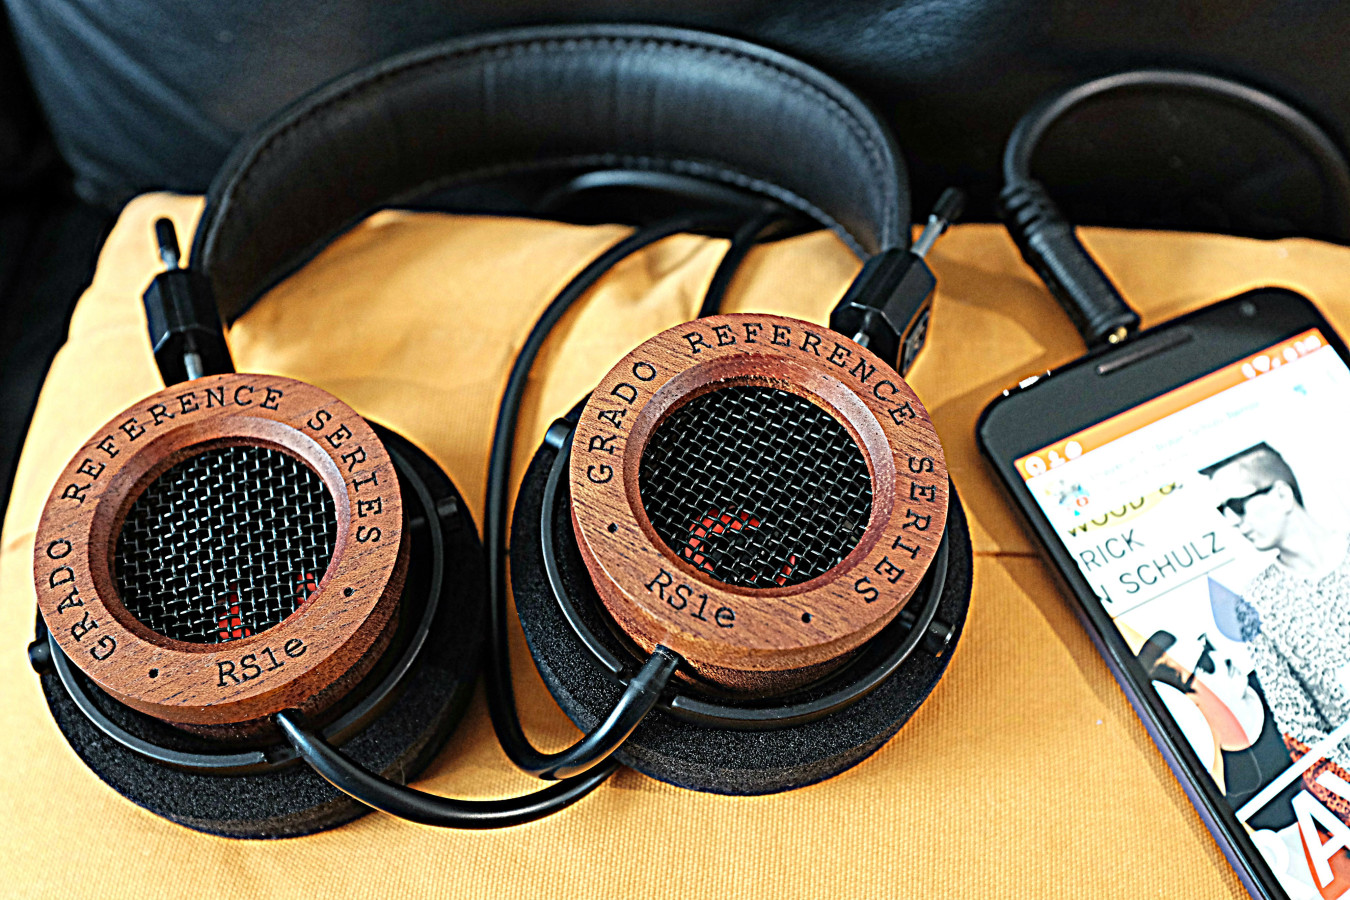 Grado Labs RS1e natural wood is a metaphor for the natural sound